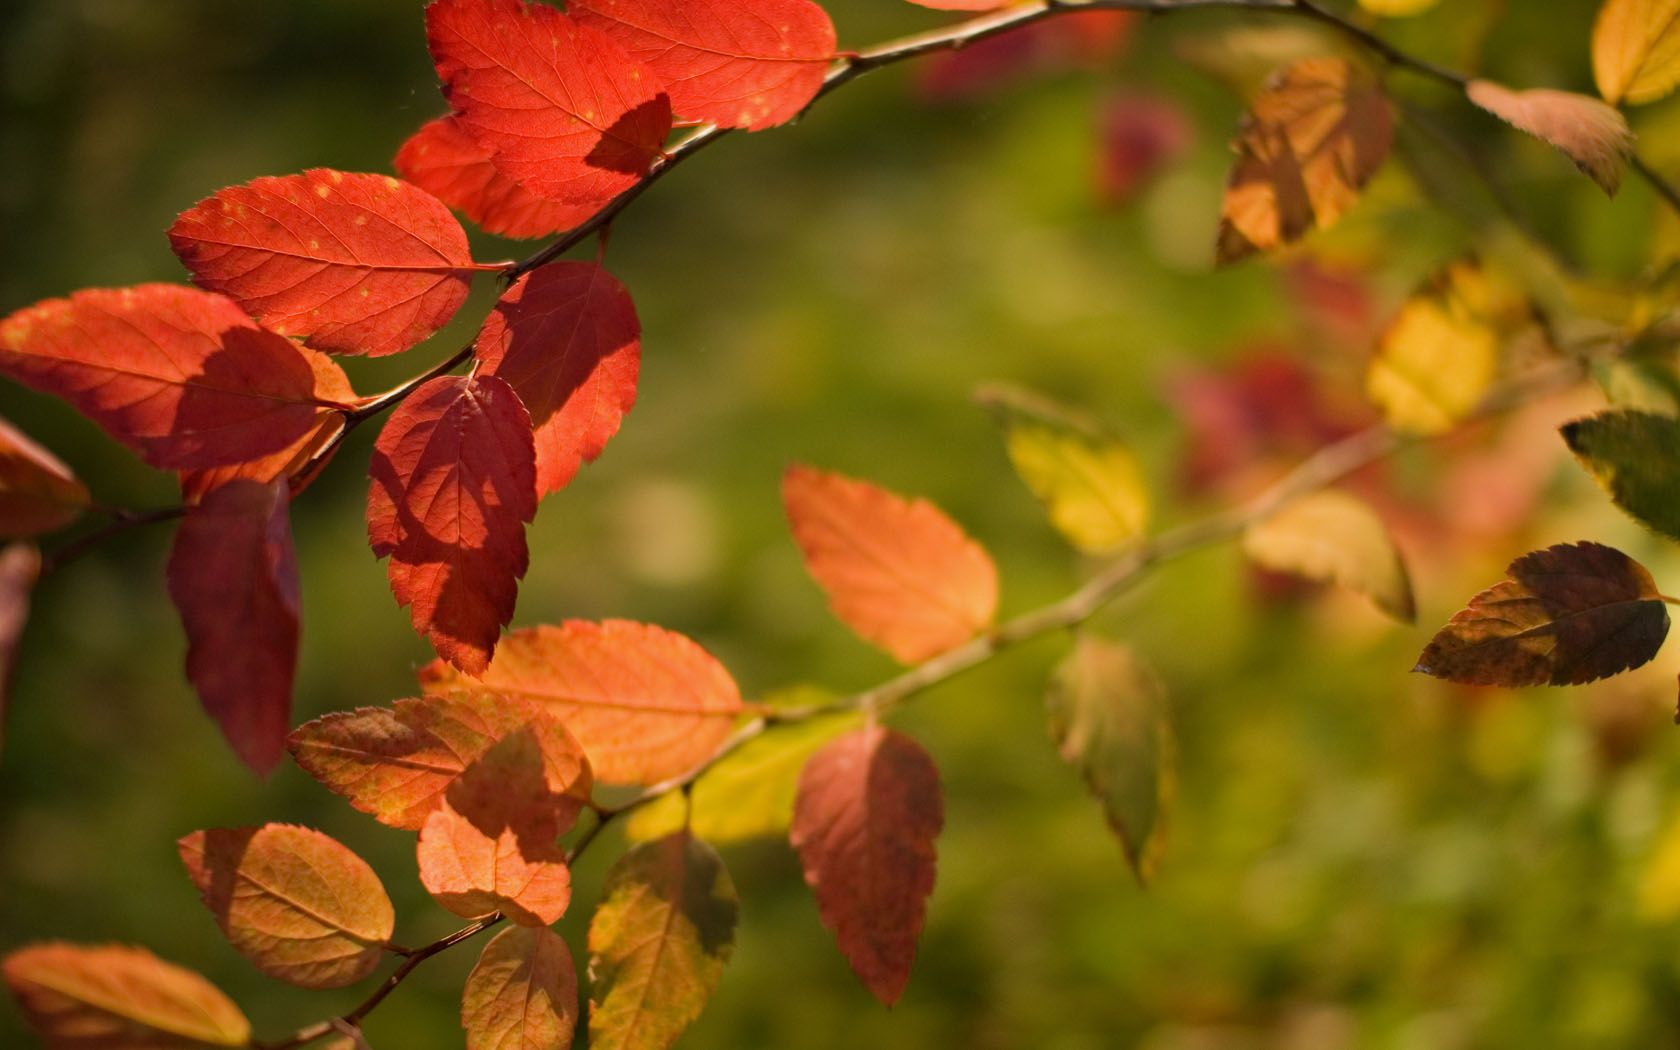 Free autumn wallpaper featuring a closeup of red and orange leafs on a branch.